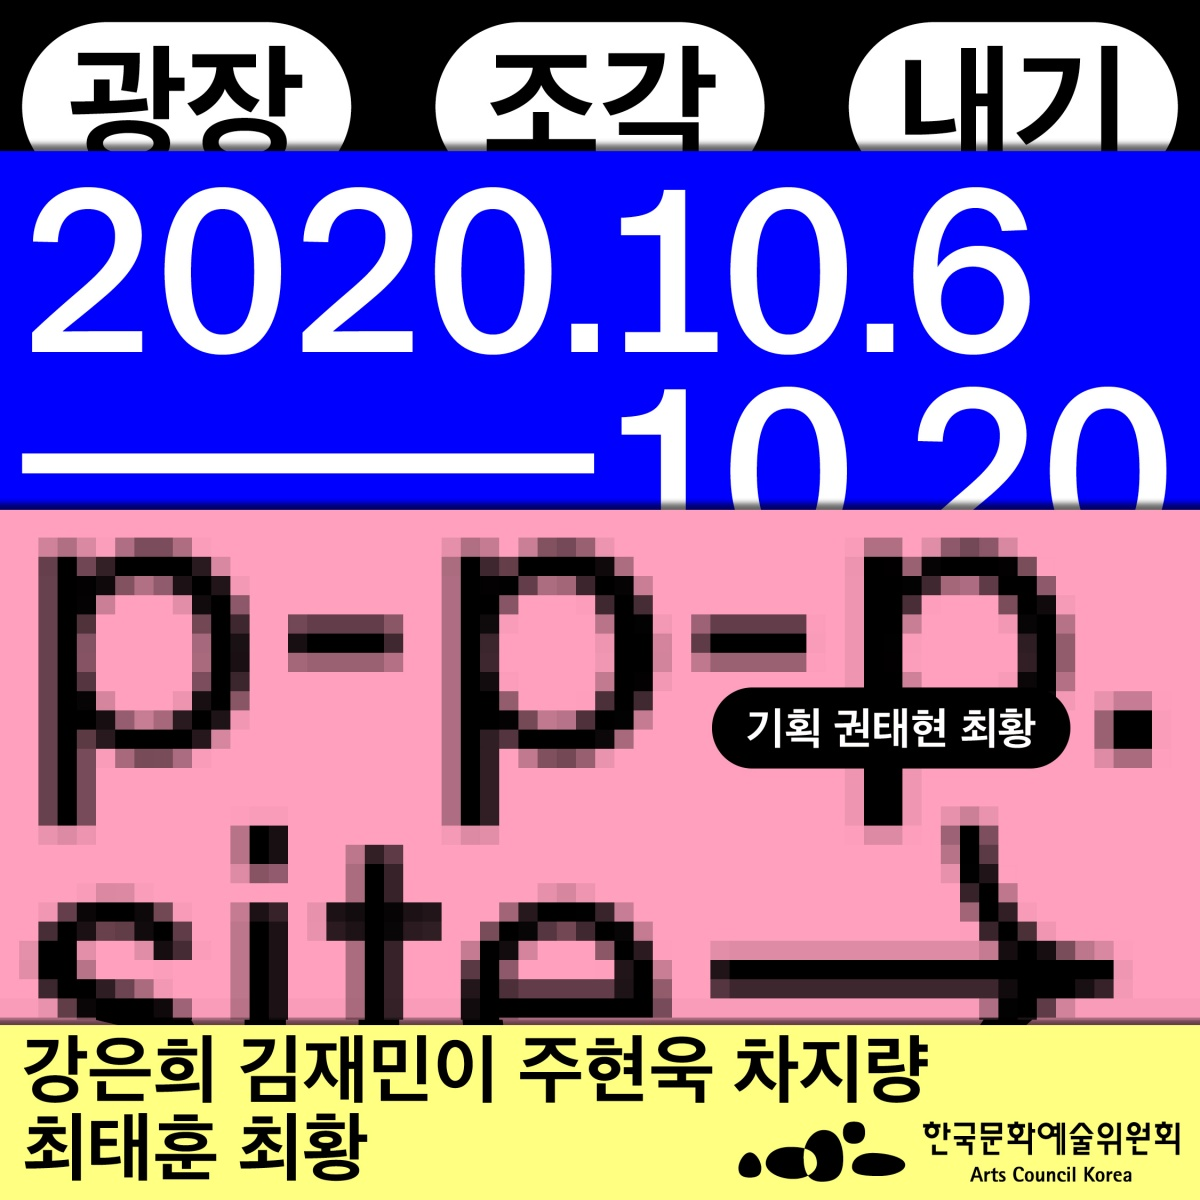 ppp-001